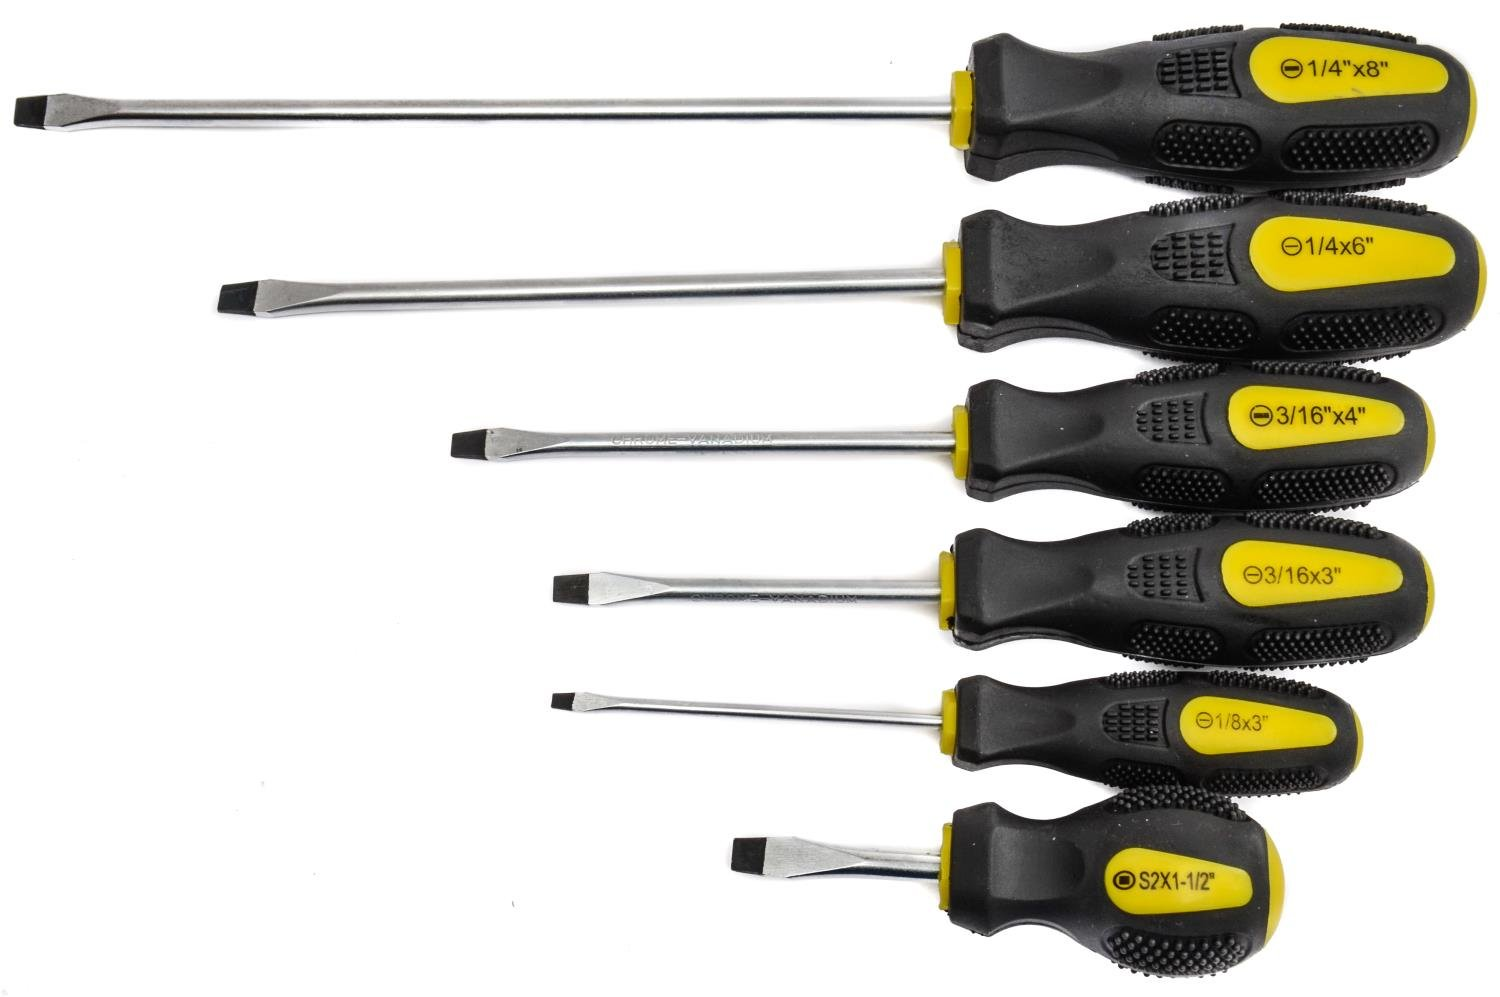 jegs performance products 80755 69 pc screwdriver set. Black Bedroom Furniture Sets. Home Design Ideas